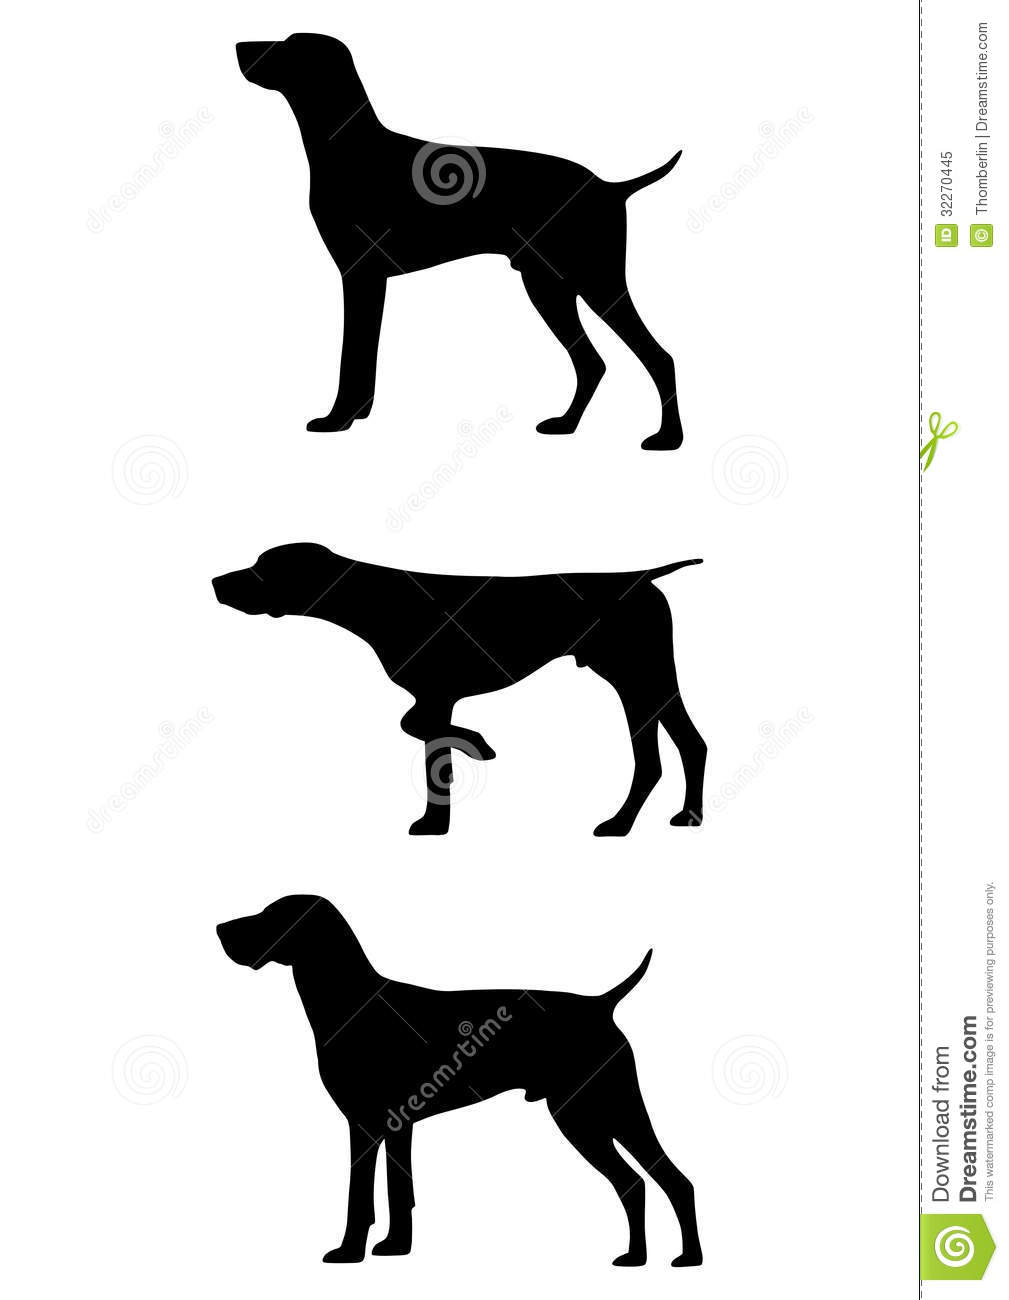 German shorthaired pointer clipart graphic black and white library Clipart pointer dog - ClipartFest graphic black and white library